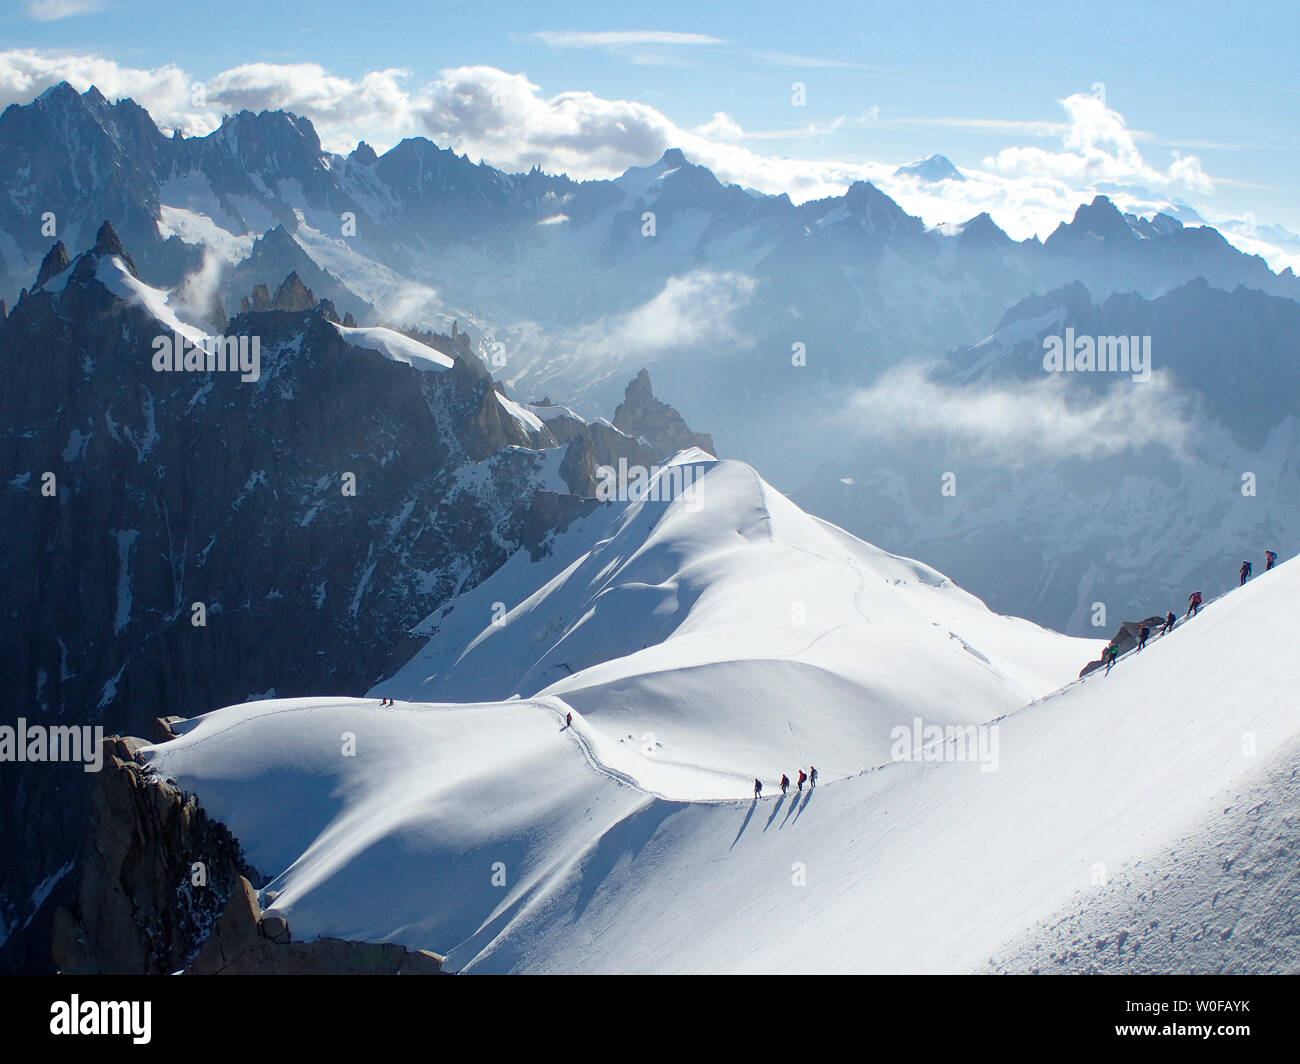 France, haute savoy, Chamonix, Mont blanc range, a group of alpinists is hiking on the snow edge of the aiguille du midi - Stock Image